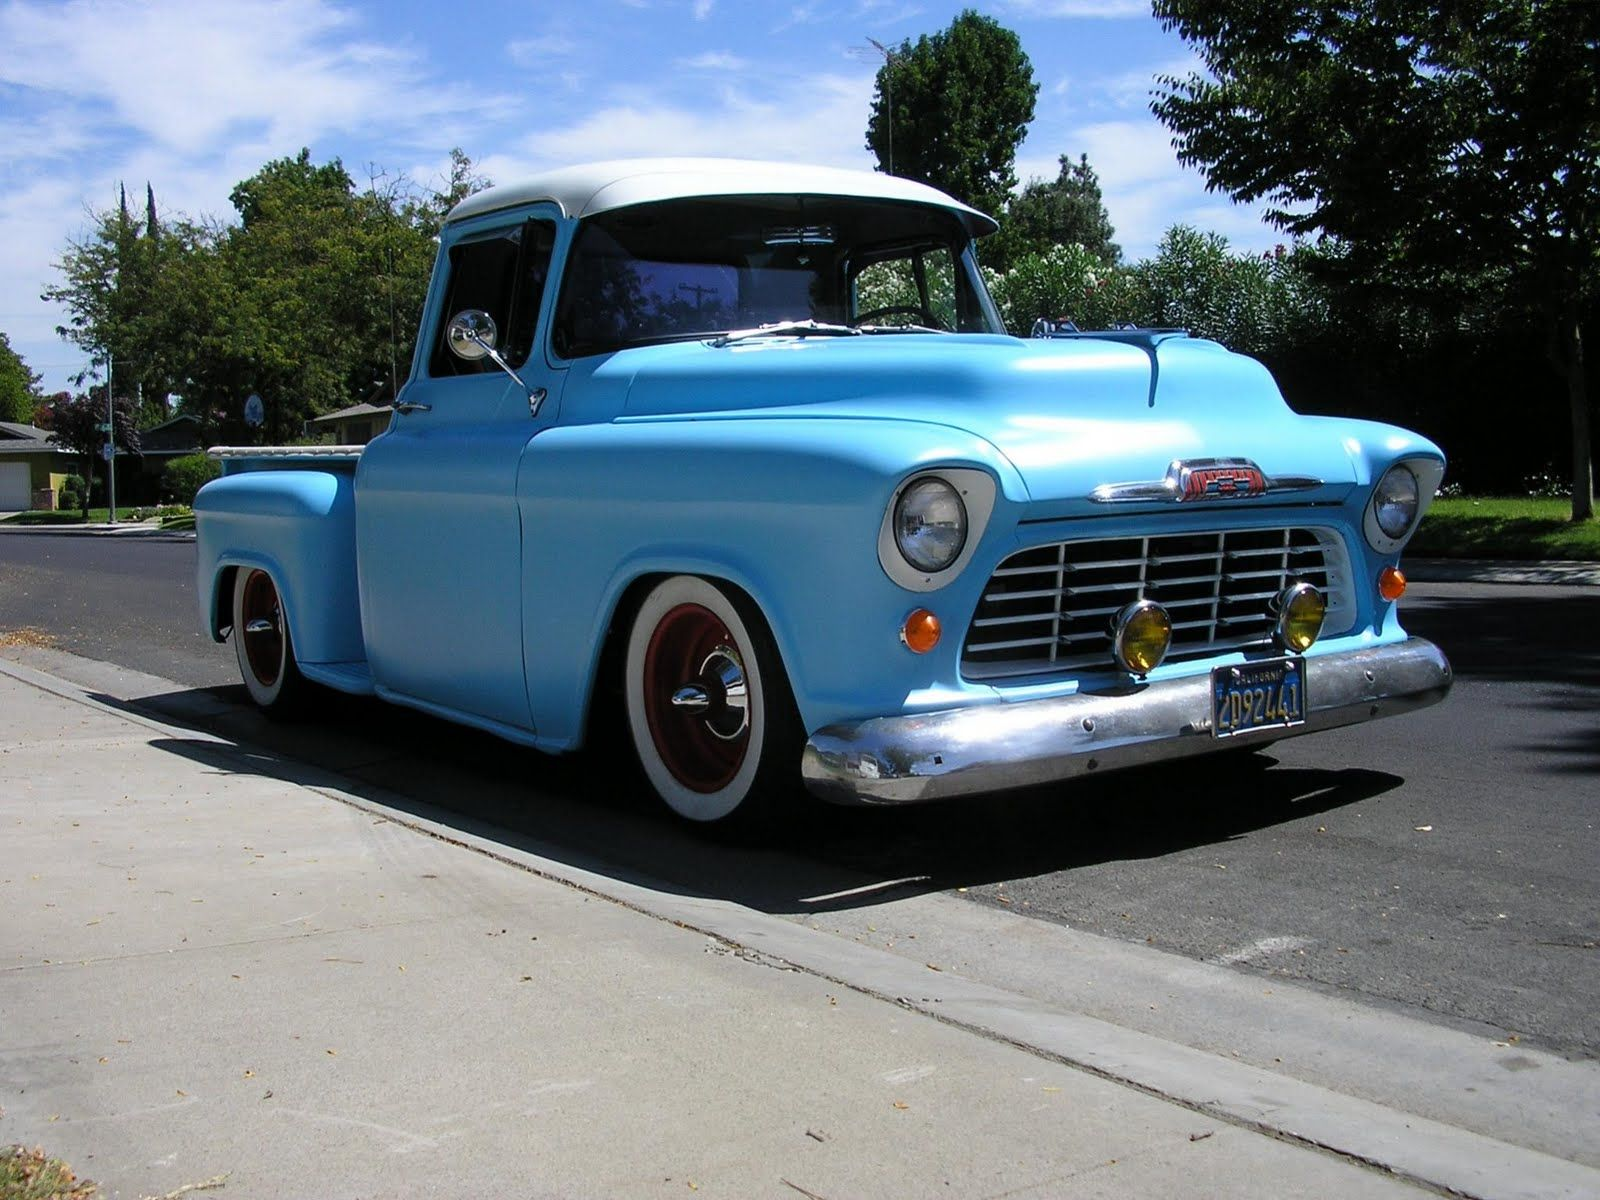 1955 chevrolet hot rod truck pictures to pin on pinterest - 1955 Chevrolet Cameo Pickup